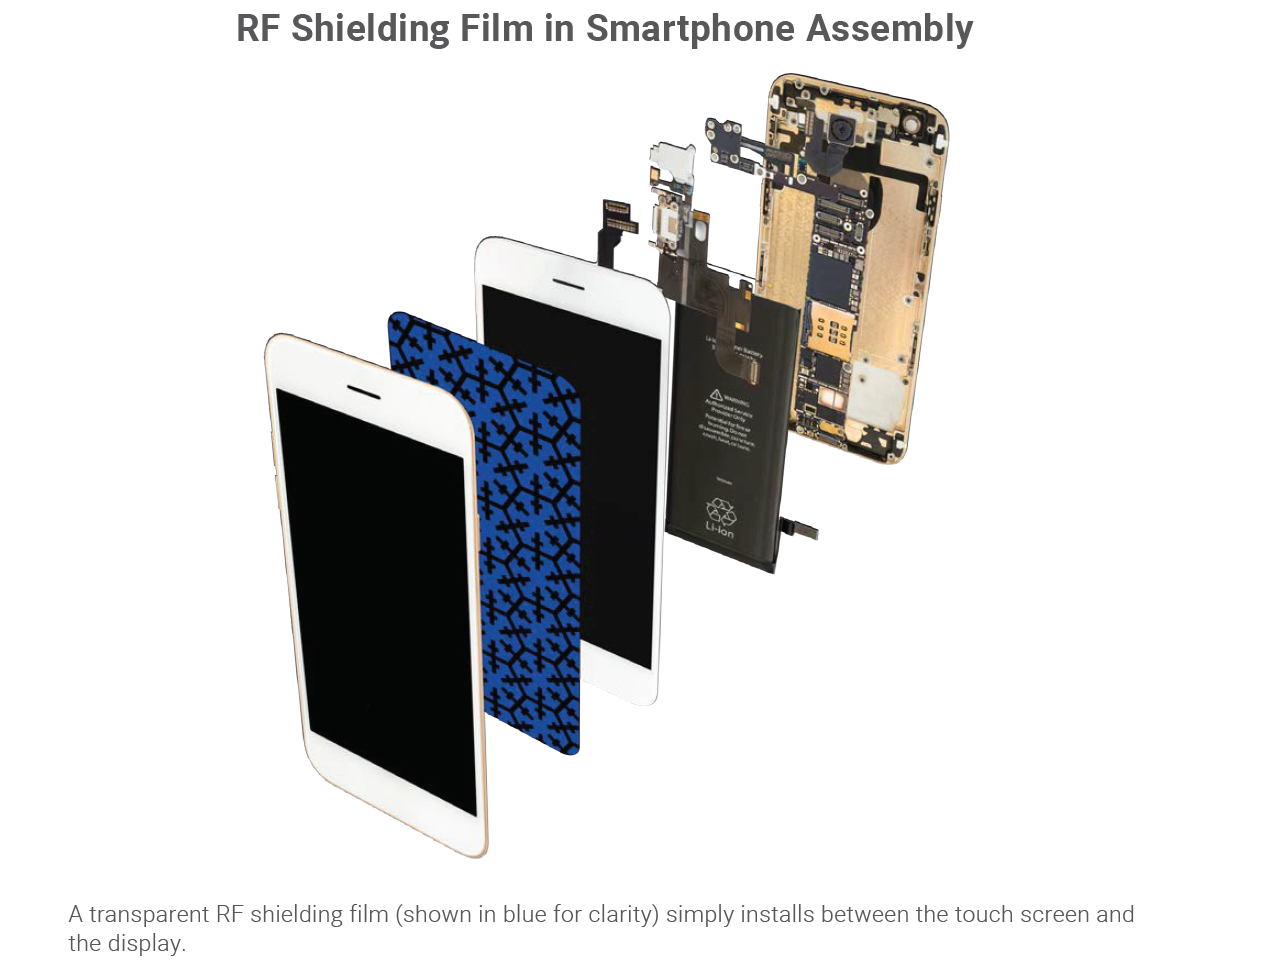 rf shiedling film in smartphone assembly